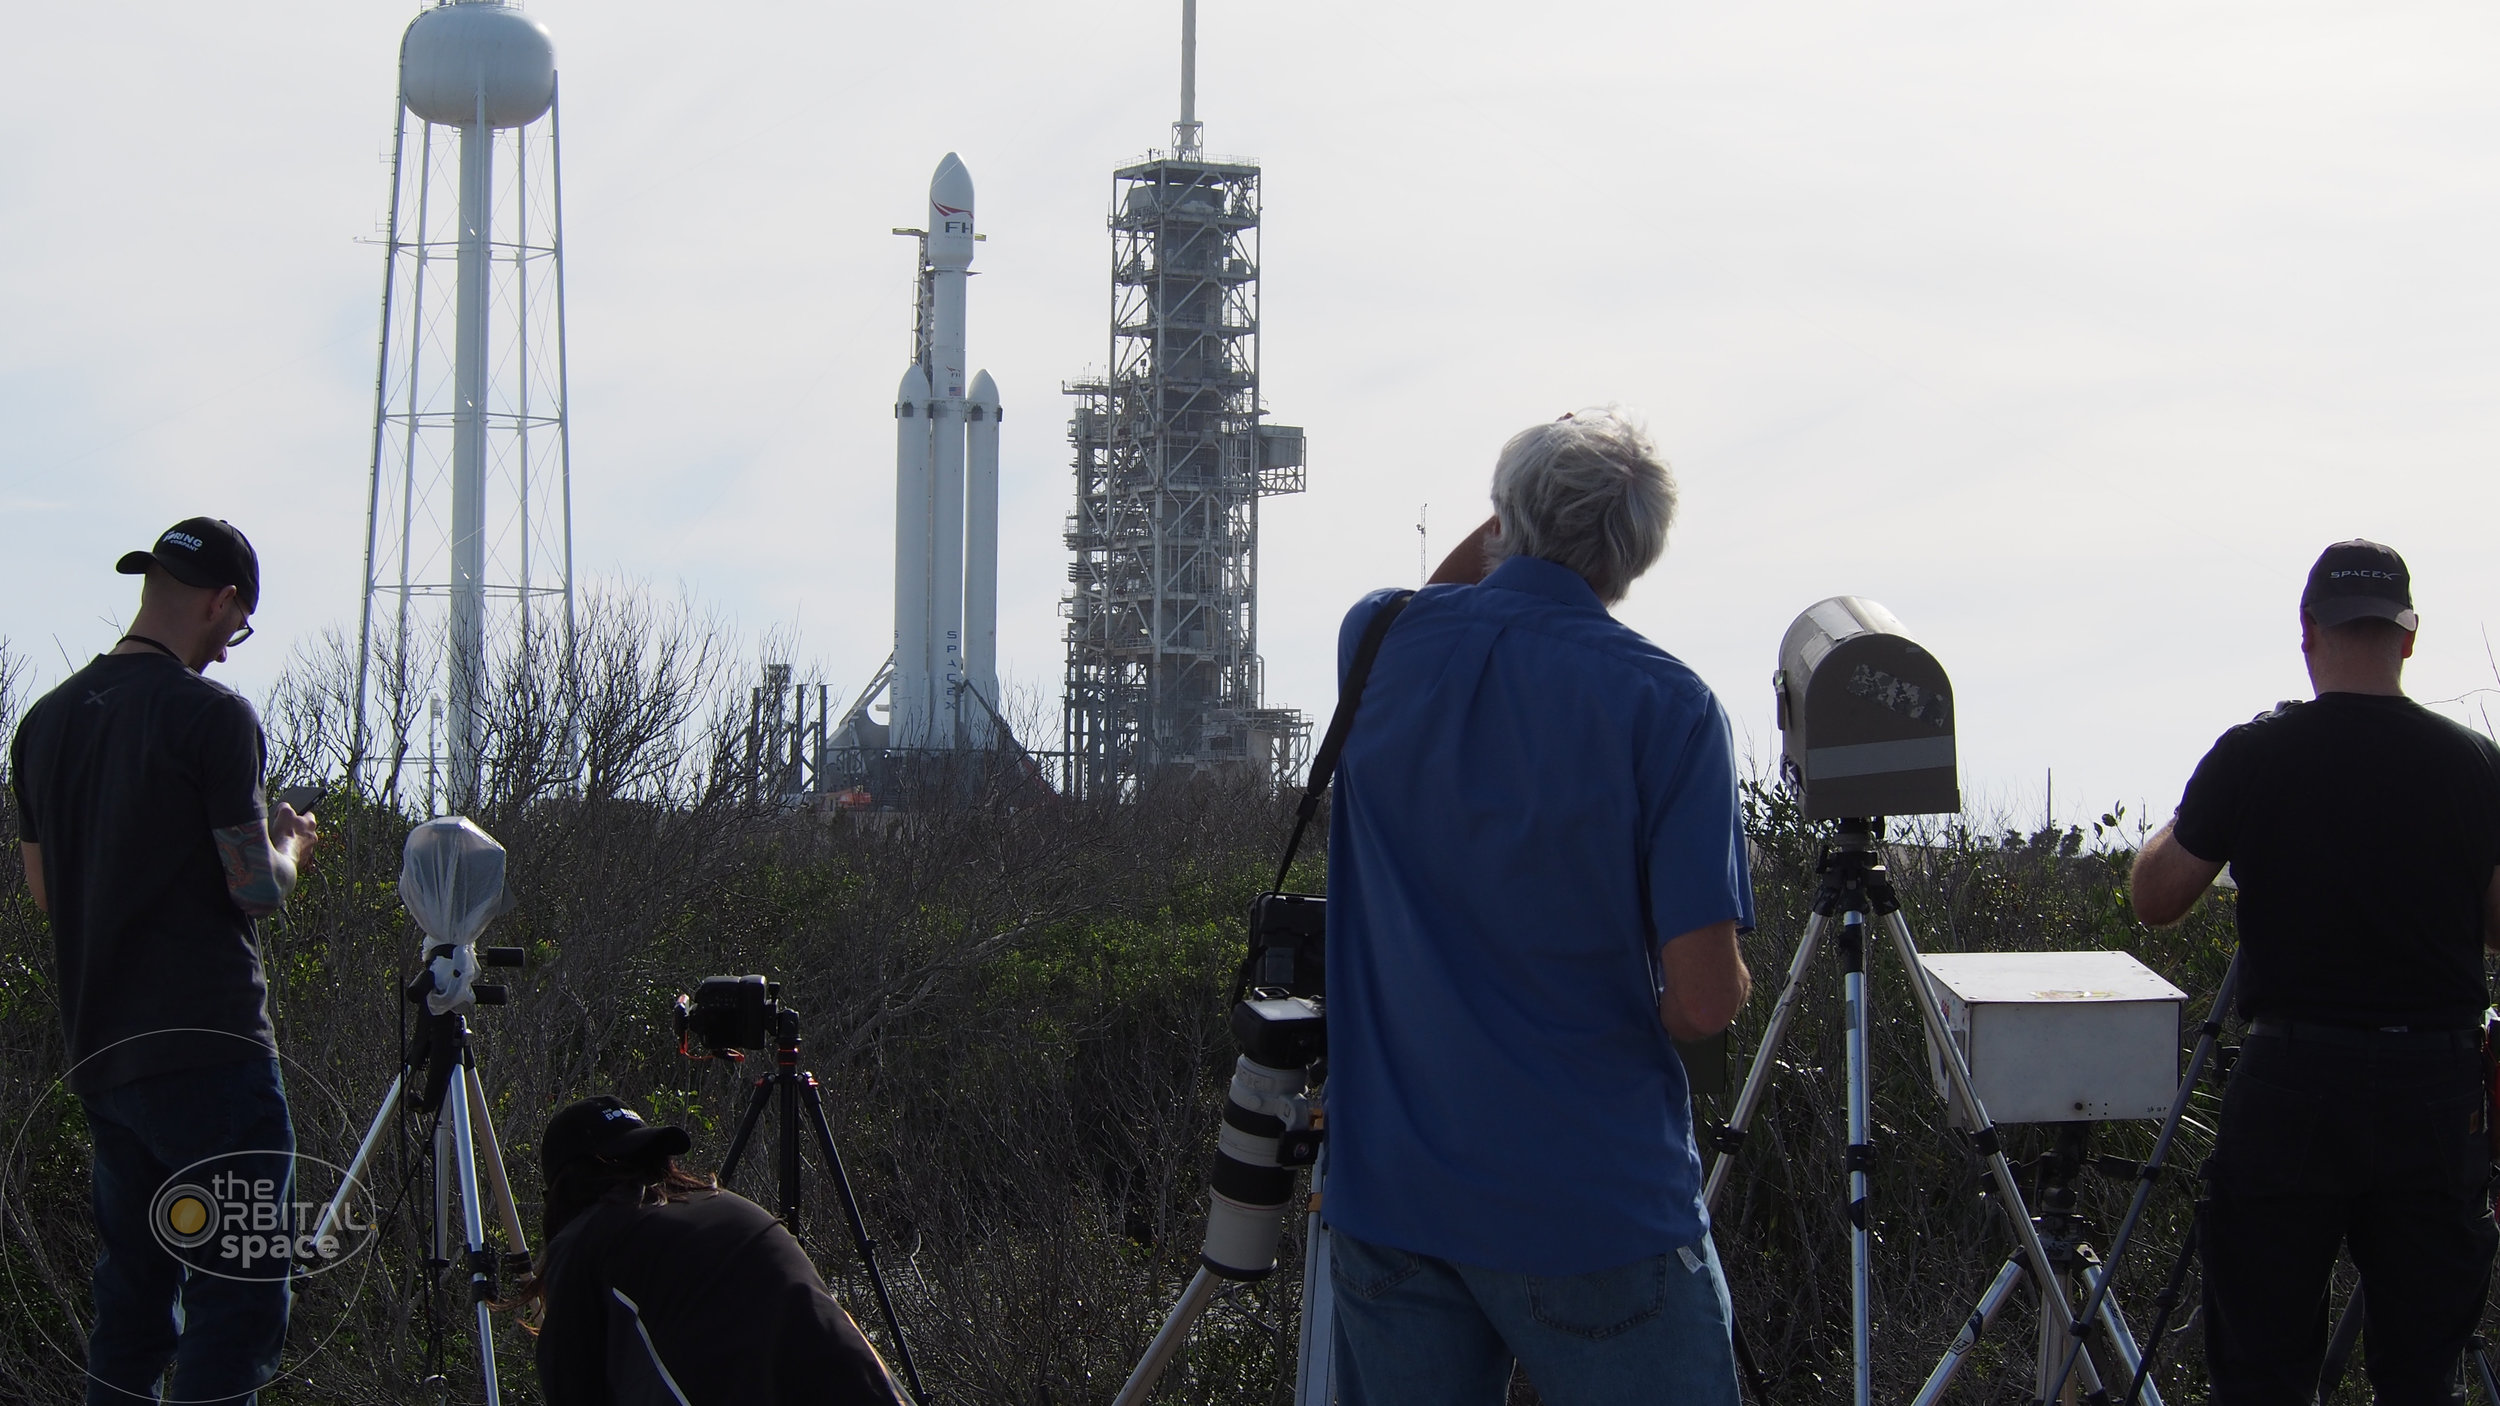 Photographers set up cameras for Falcon Heavy - North of LC-39A